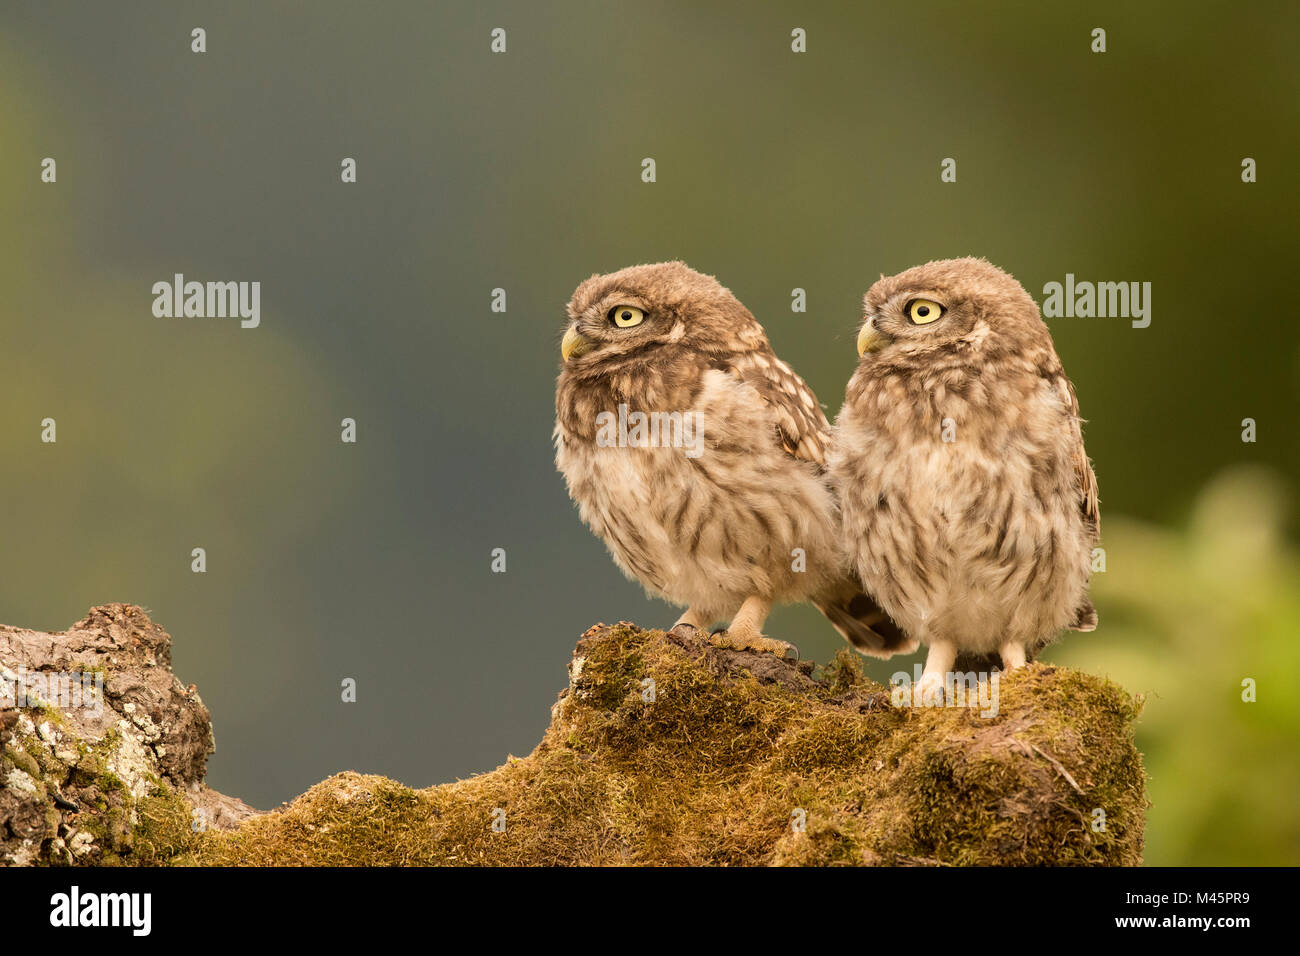 Little owls (Athene noctua),sitting,direct look,Rhineland-Palatinate,Germany - Stock Image